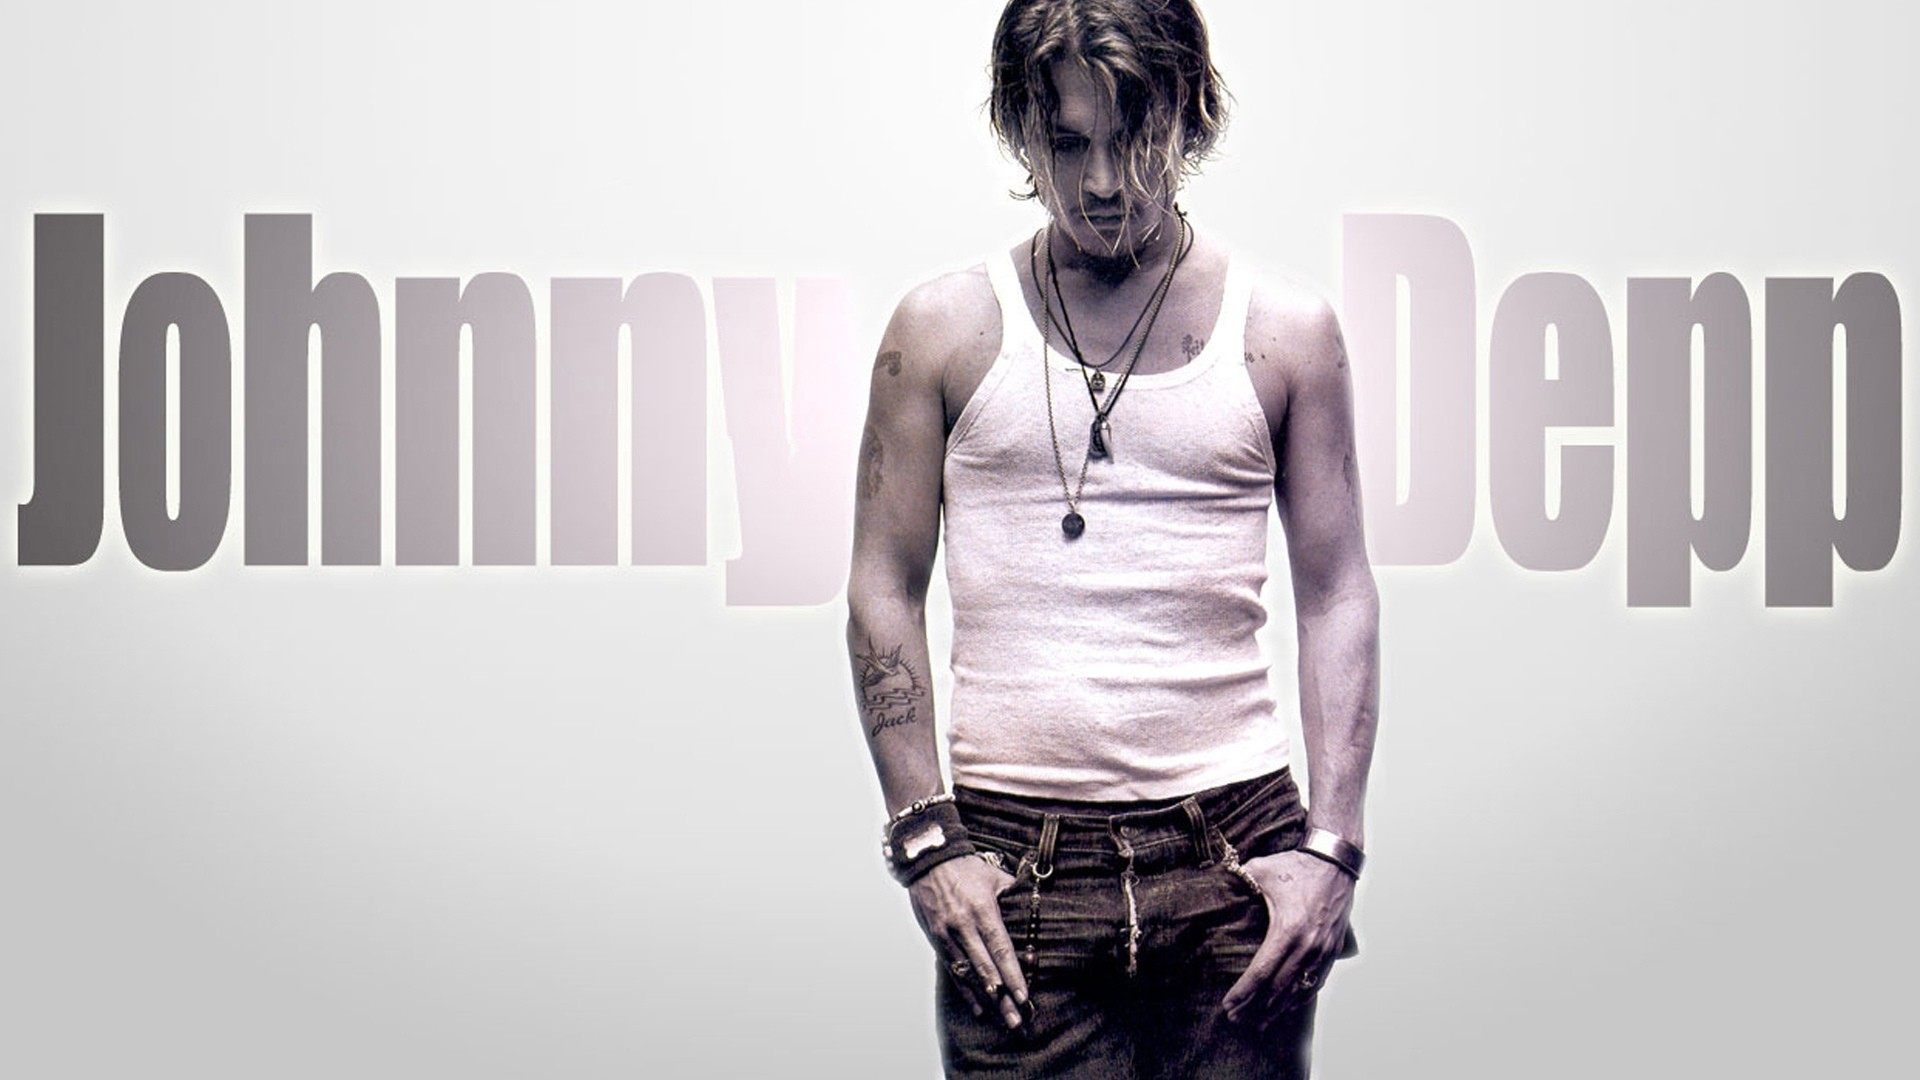 Johnny Depp Wallpaper for pc